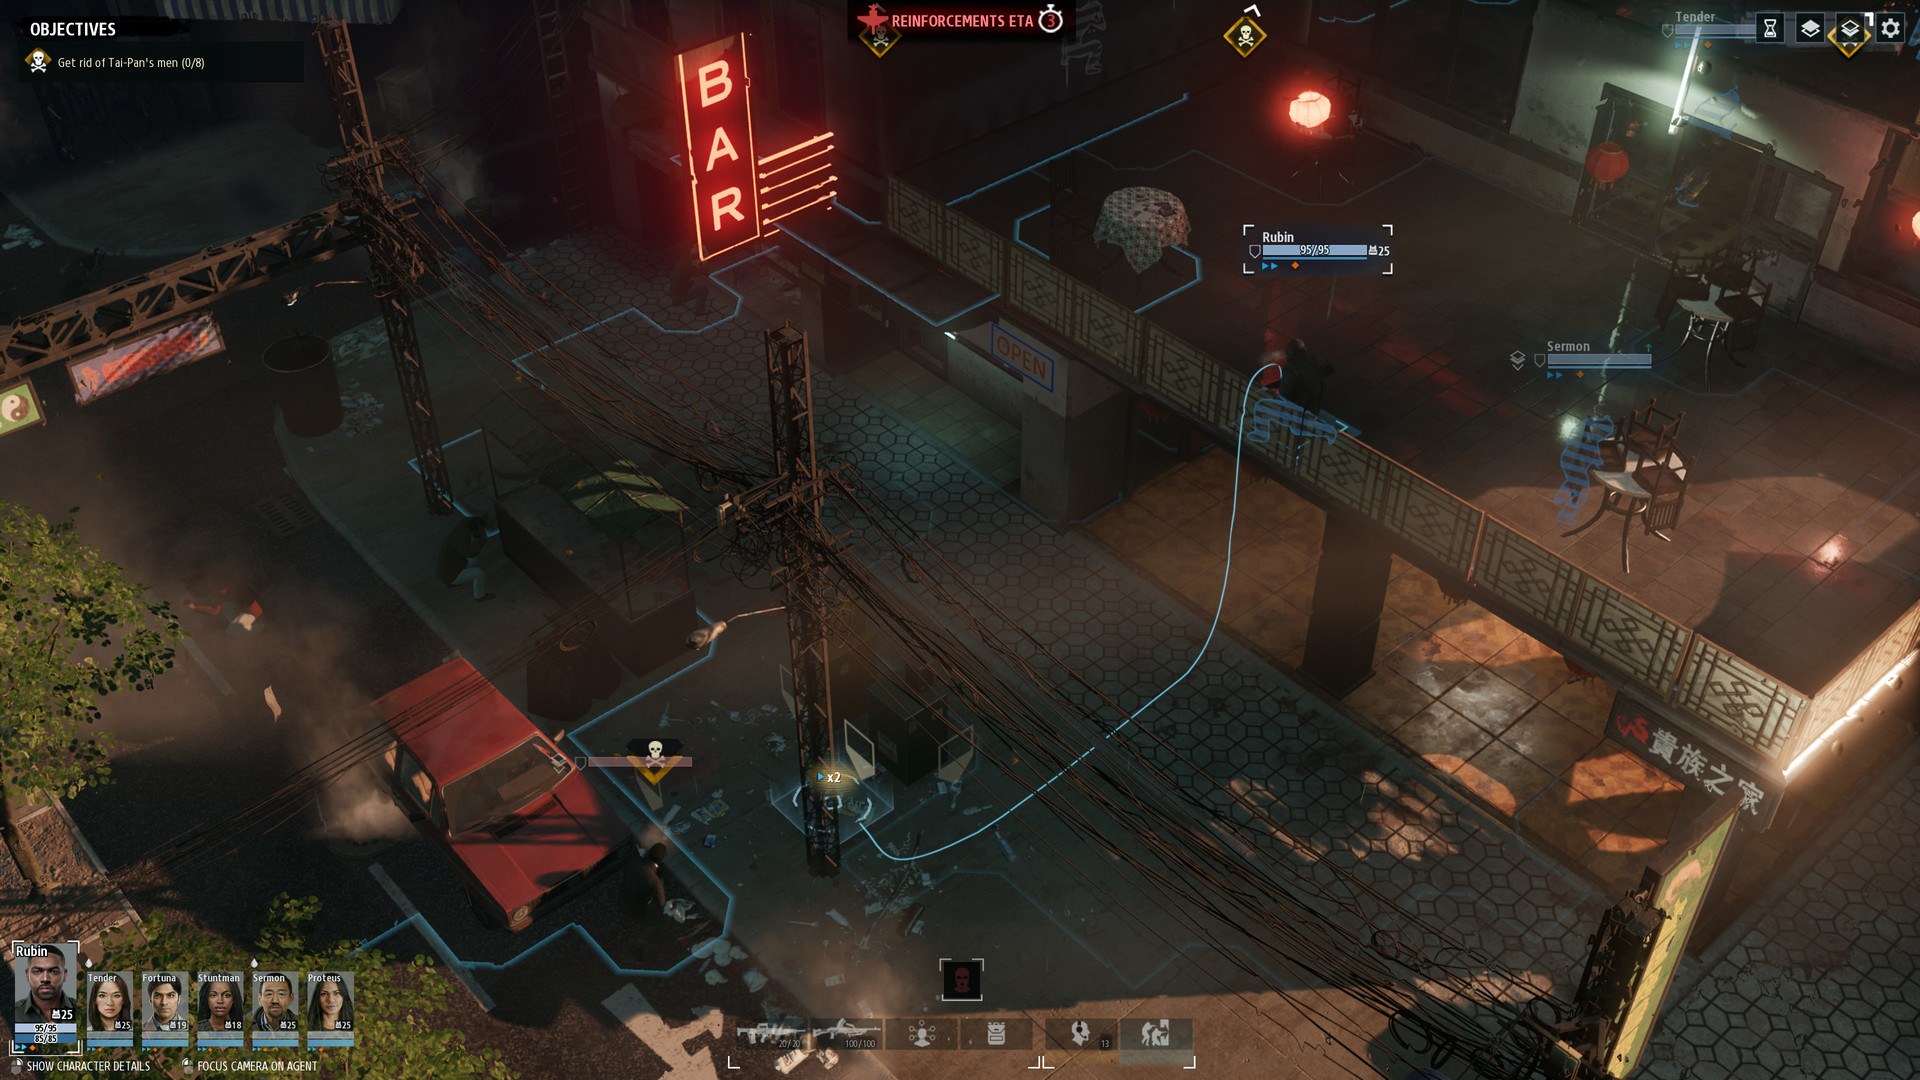 Phantom Doctrine arrives today on PC and consoles